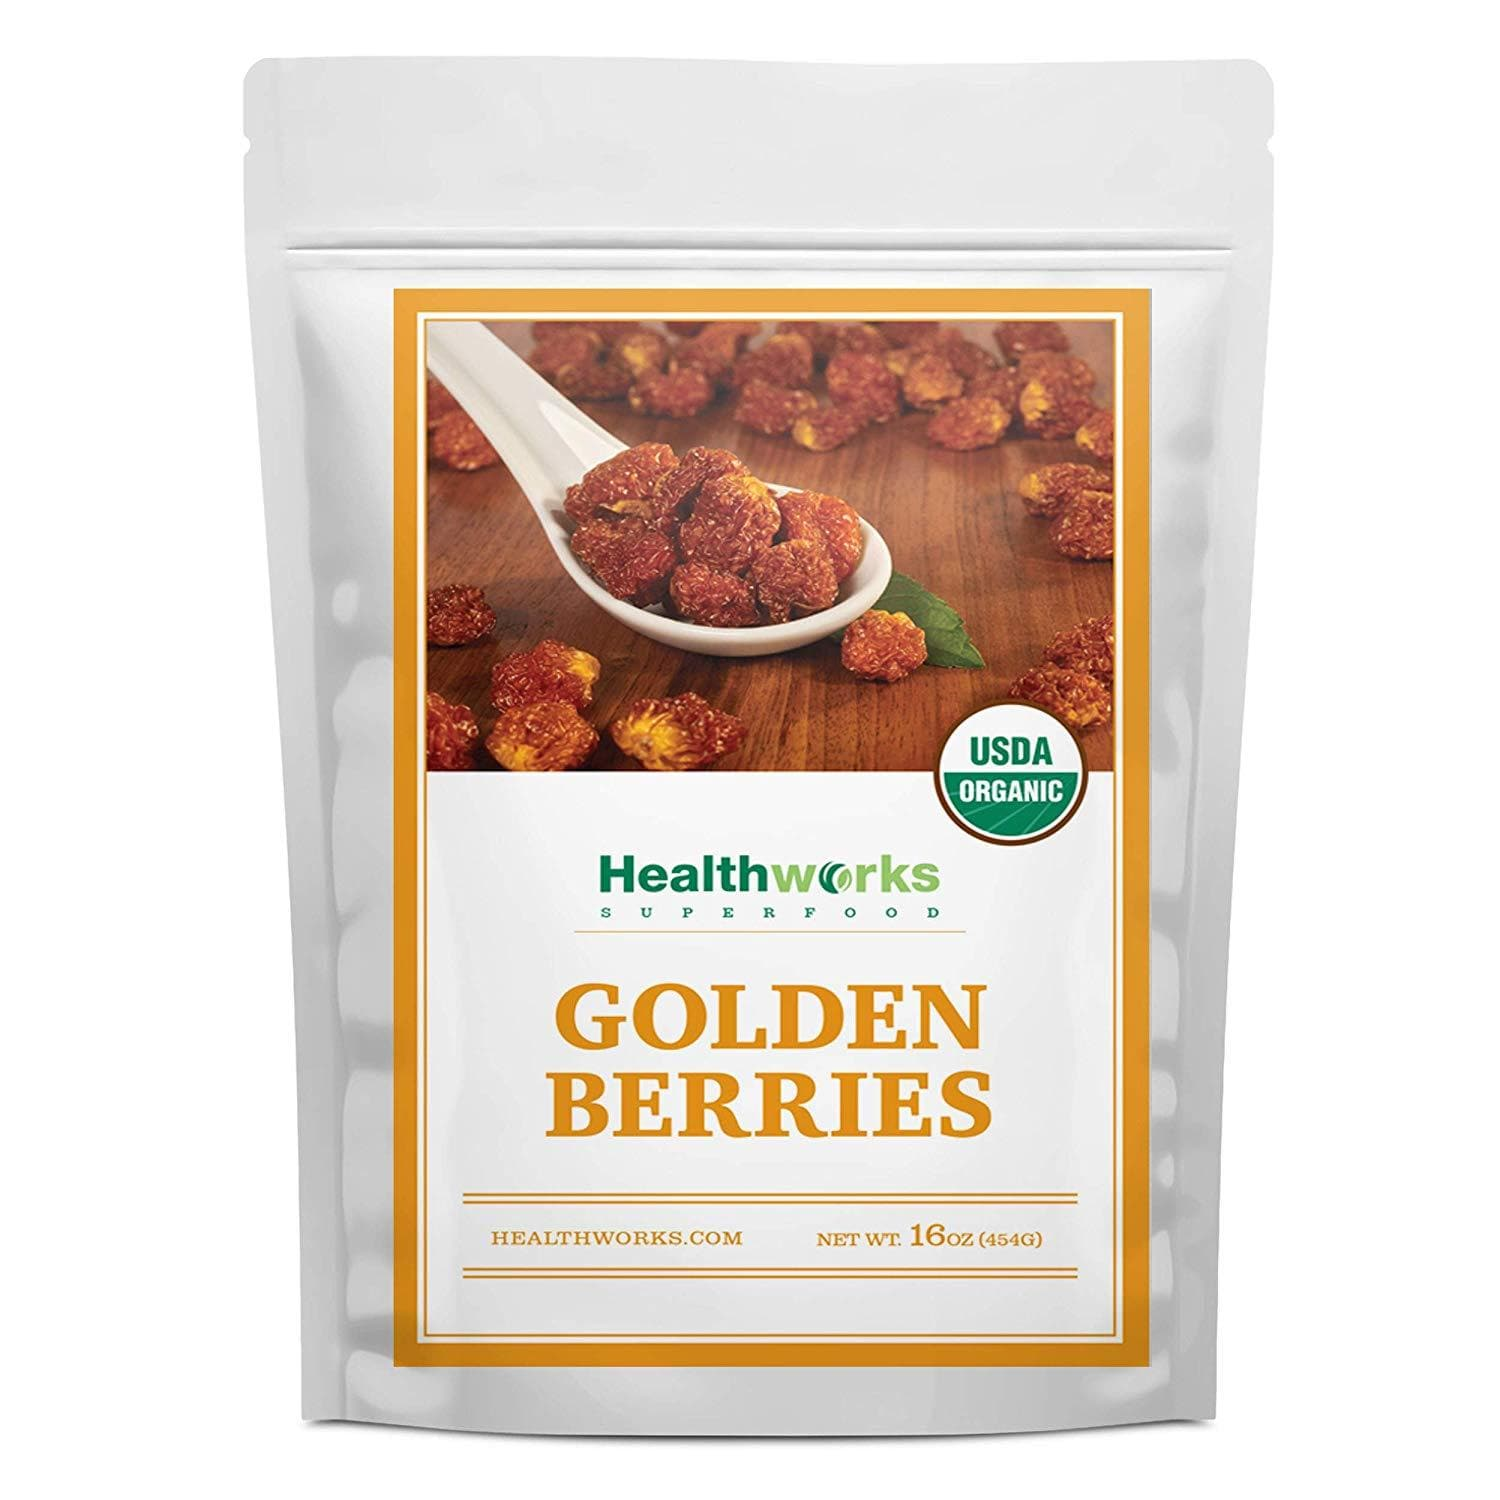 Healthworks Organic Golden Berries 1lb - Raw, Sun-Dried and All-Natural - Healthworks Superfood Organic